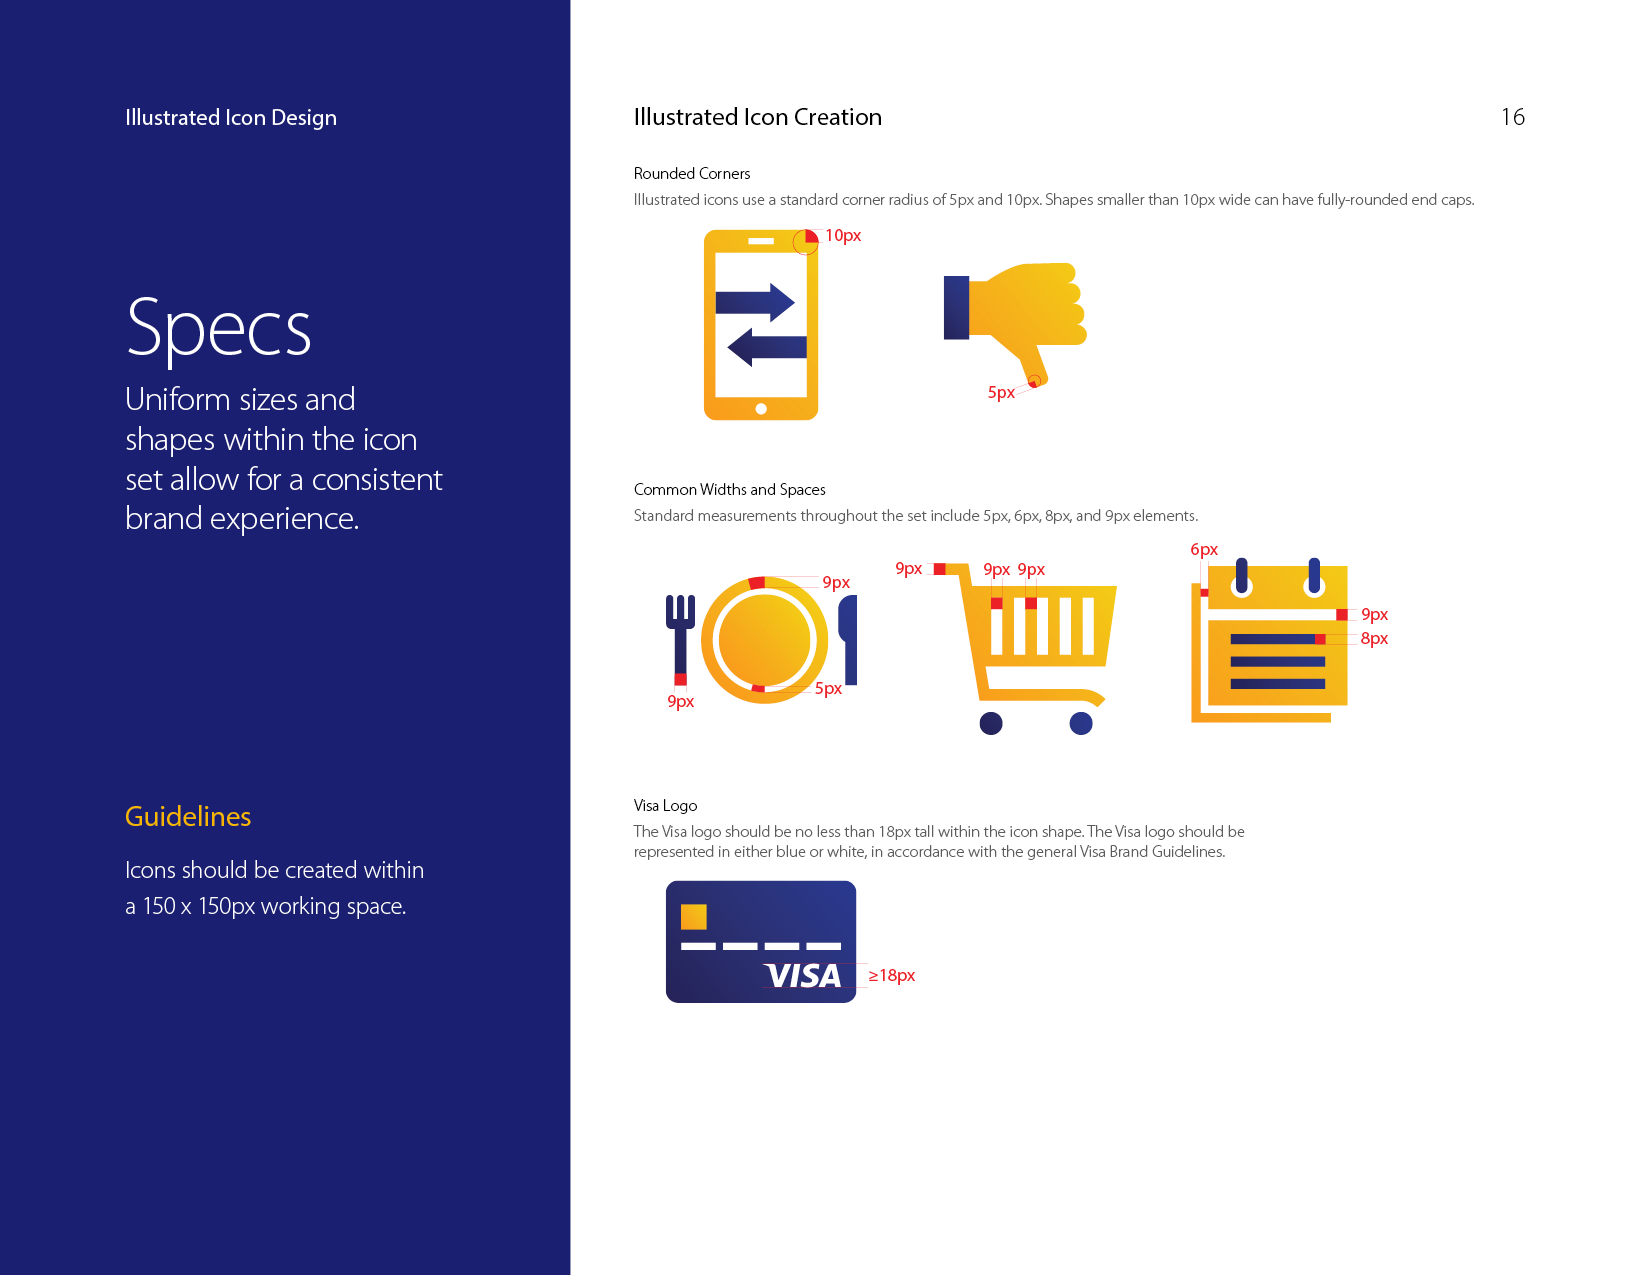 Visa illustrated icons style guide specs